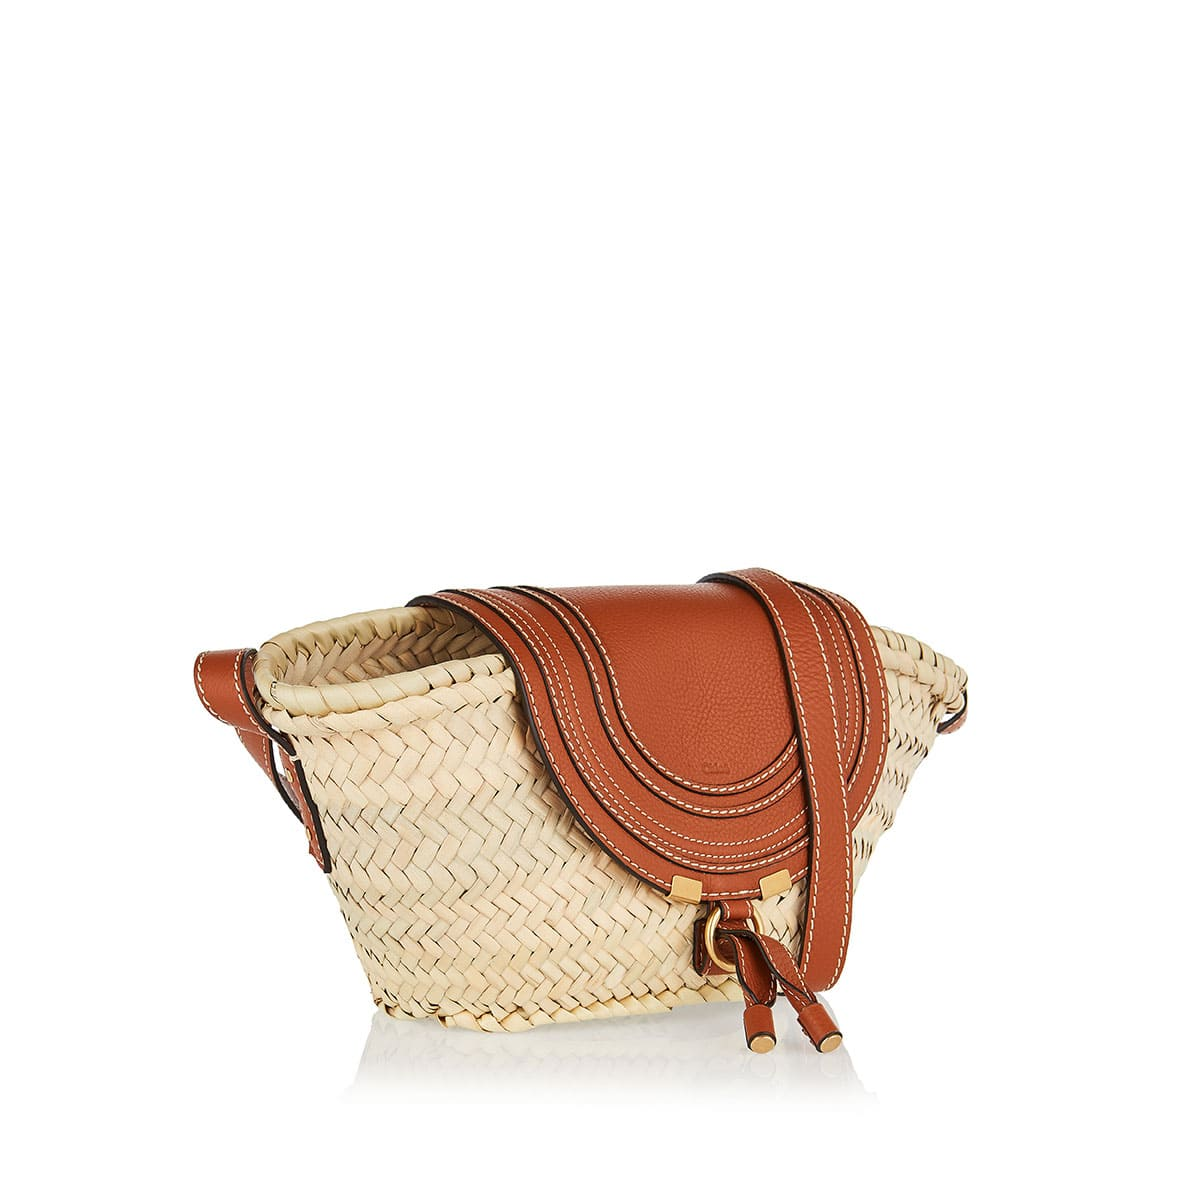 Marcie mini raffia shoulder bag